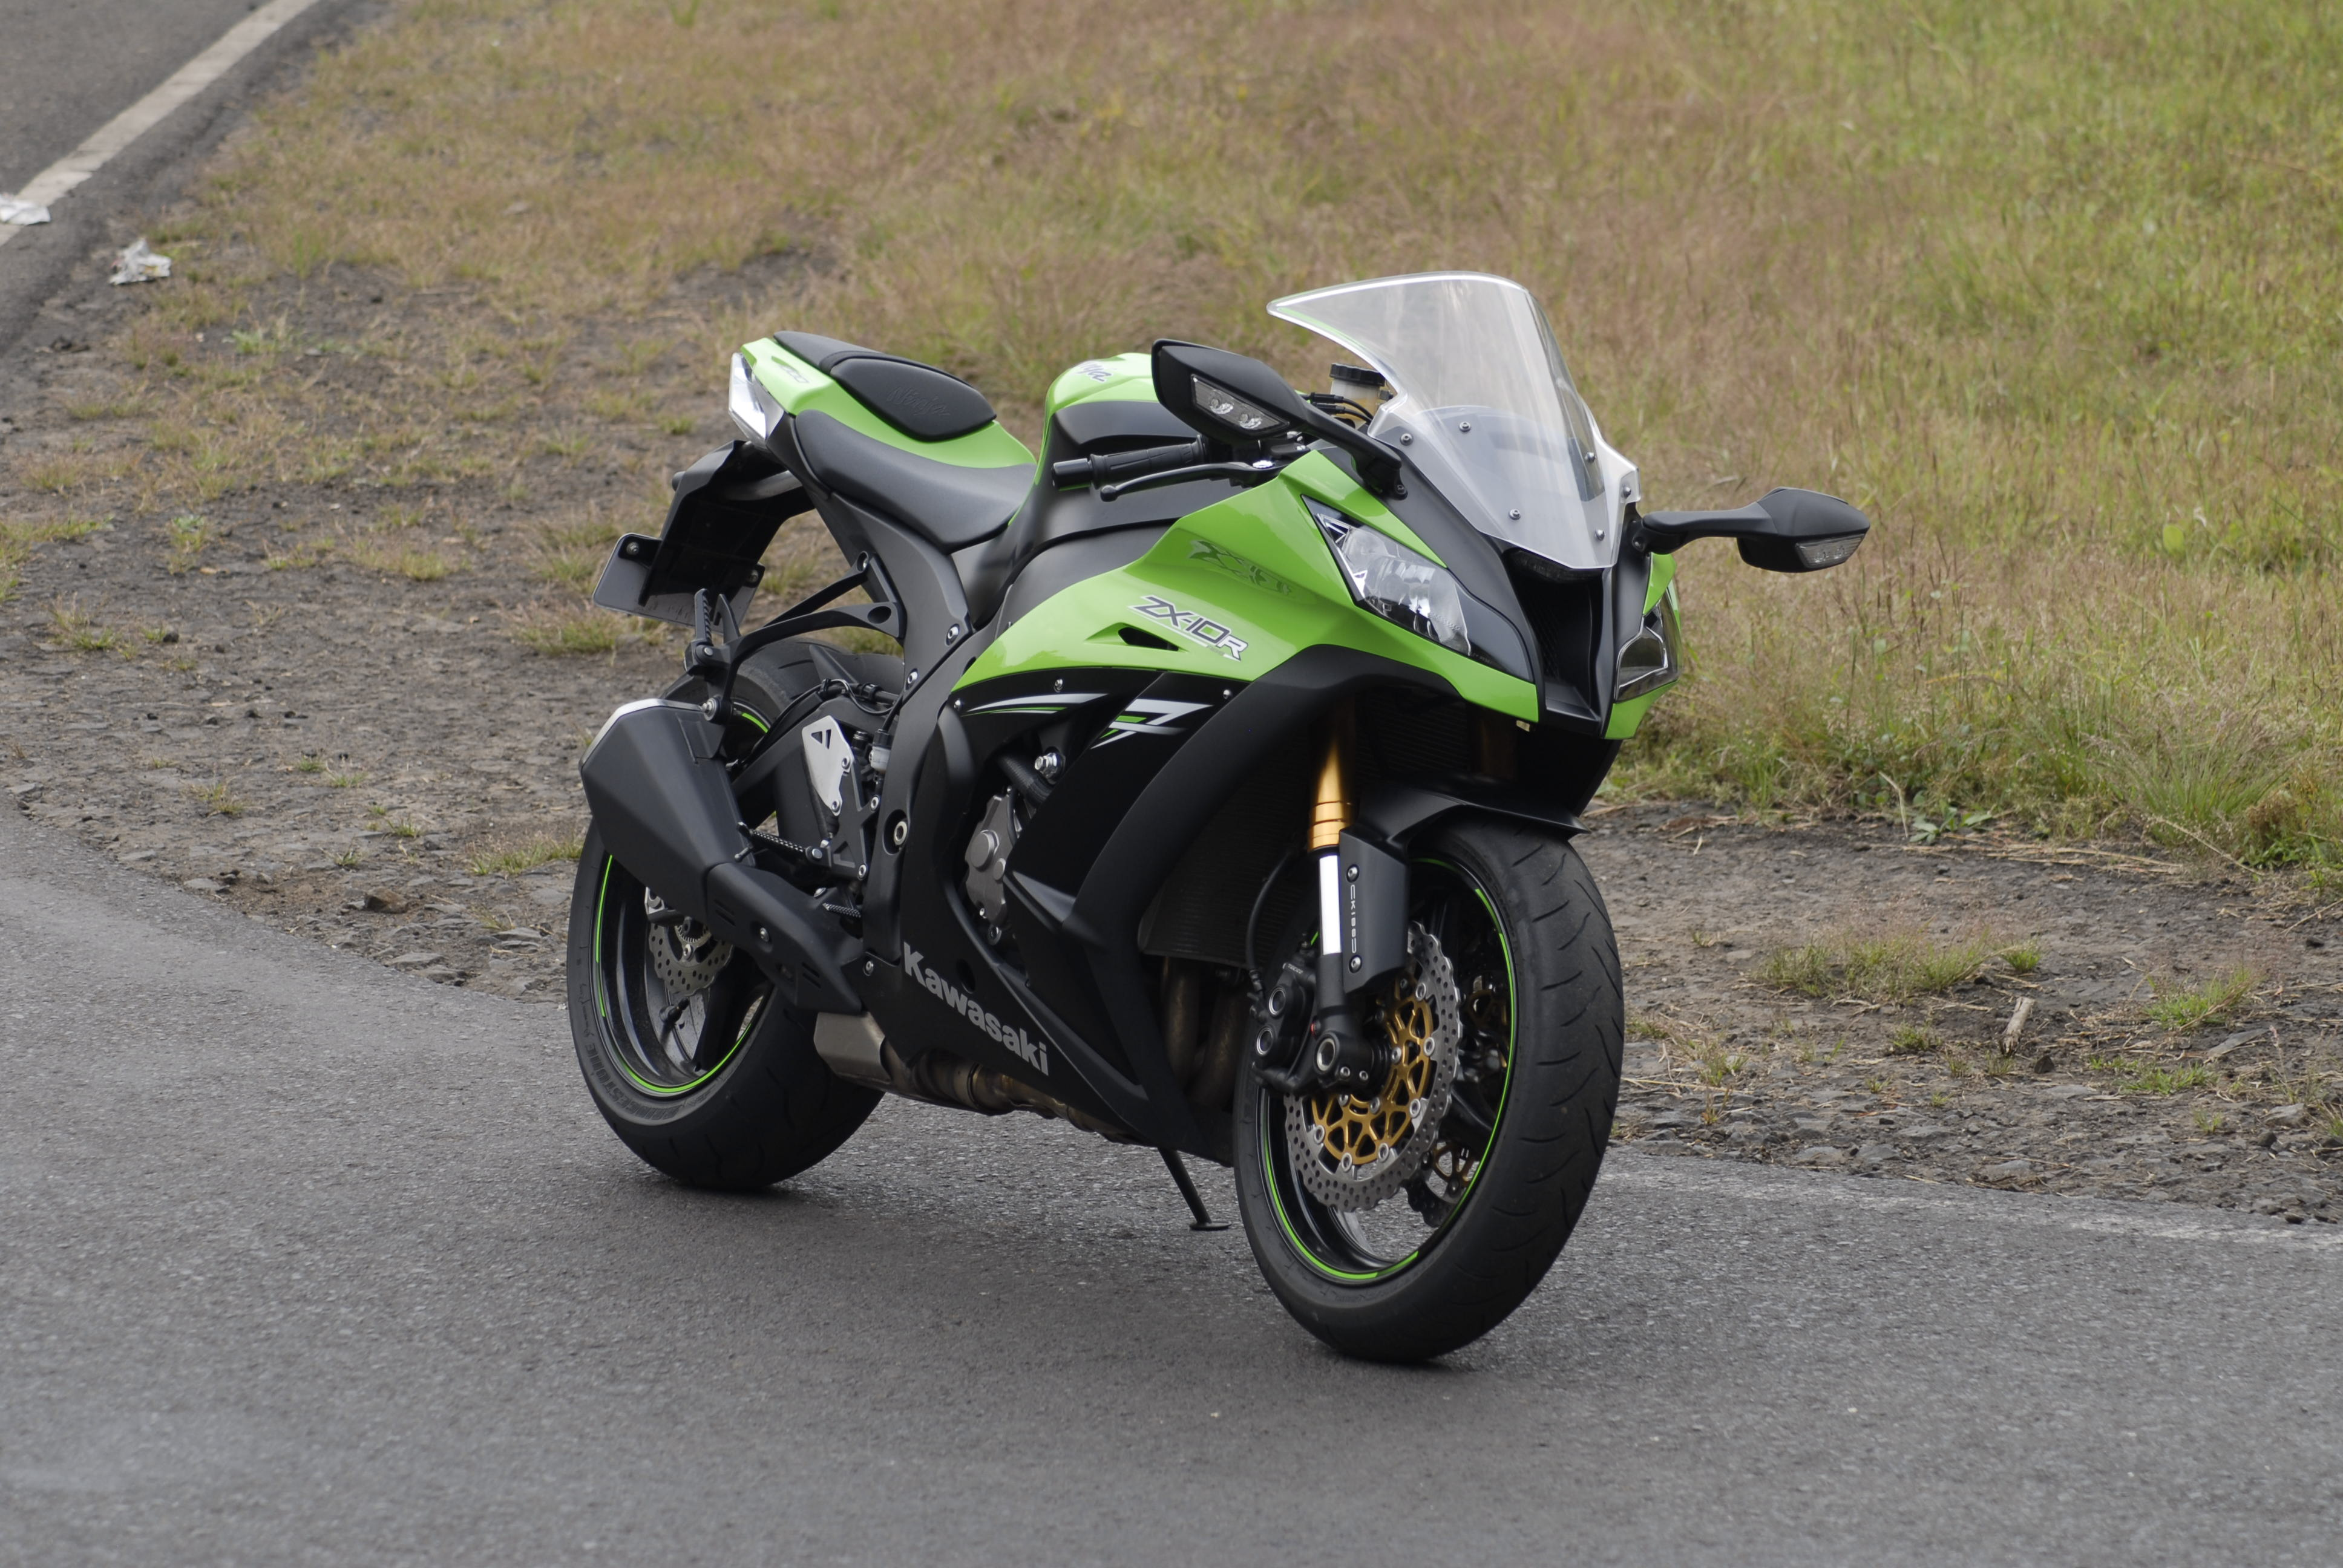 New Kawasaki Ninja ZX10R Photo Gallery Autocar India 3872x2592